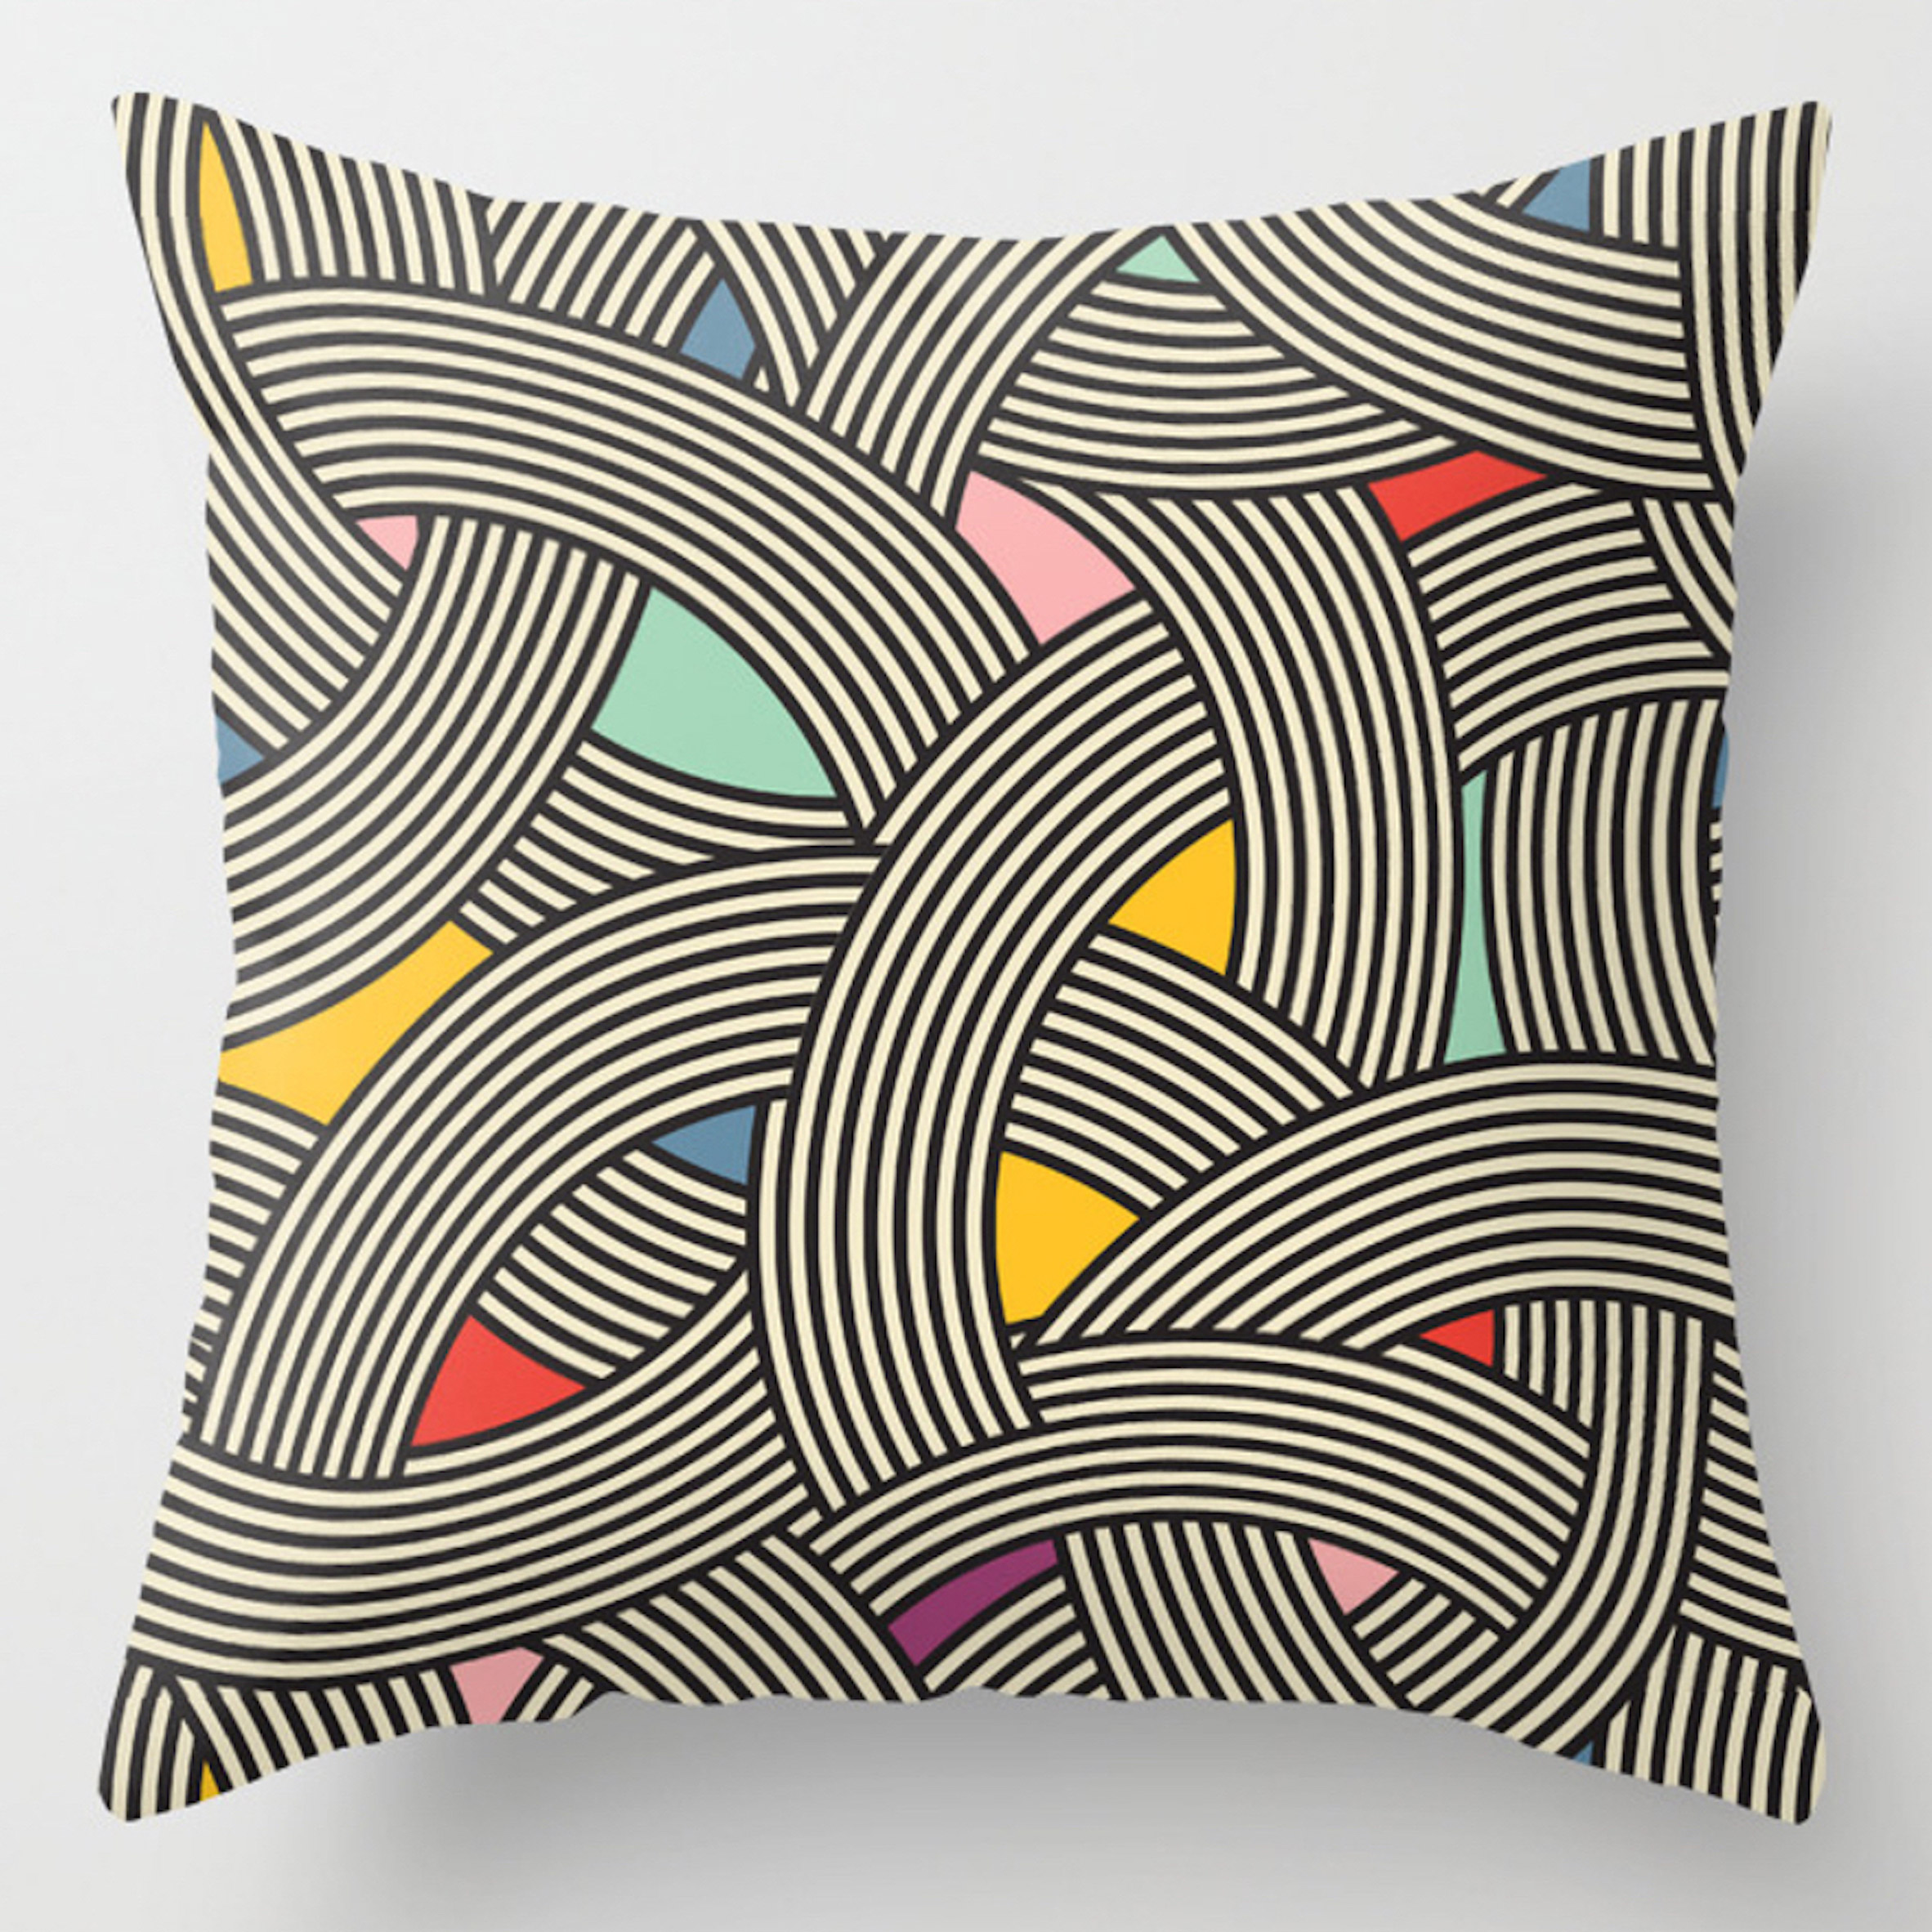 15 Christmas gifts for interior designers